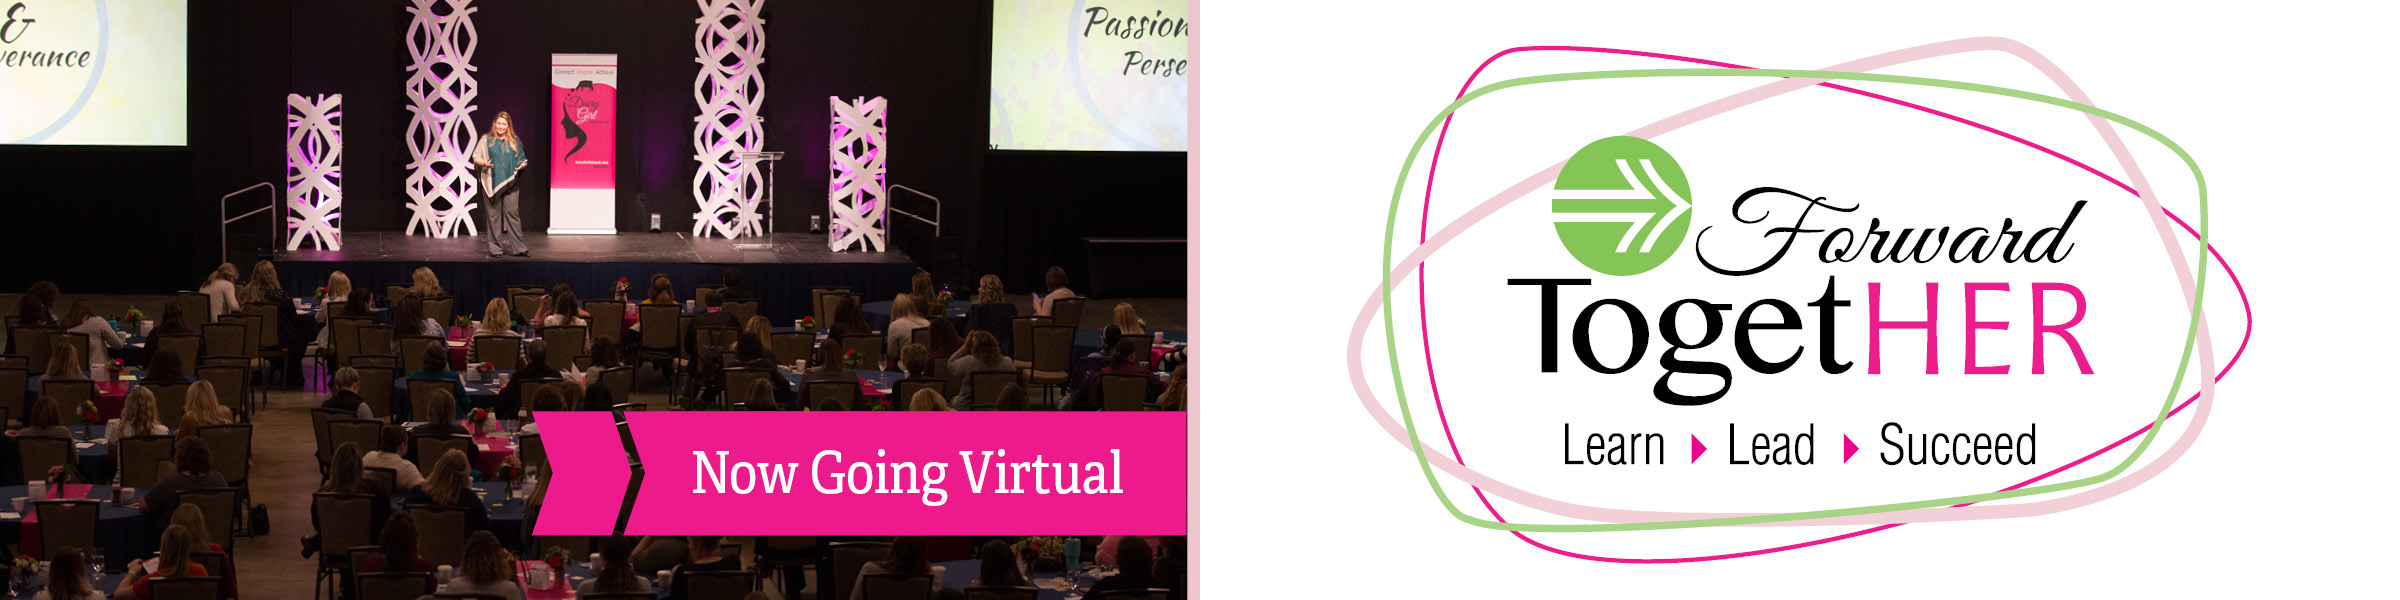 Forward TogetHER_Virtual National Conference_Website Headers_20202